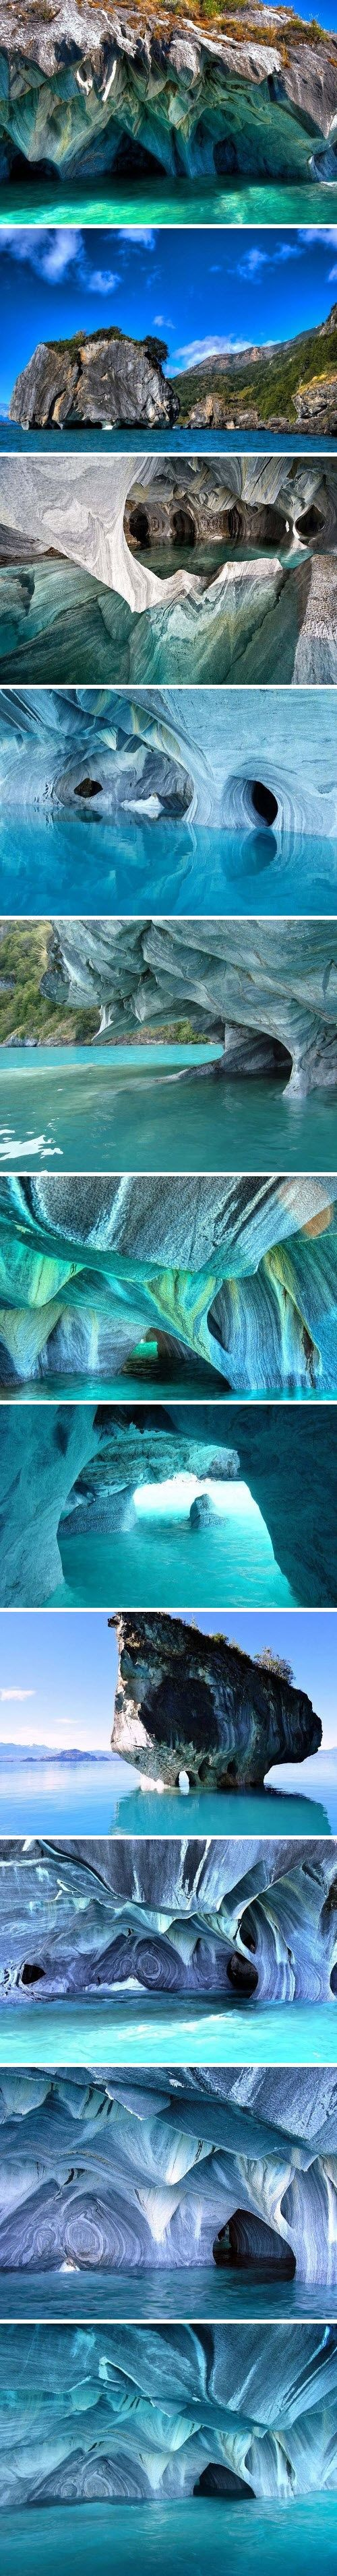 #Marble_Caves in #Chile http://en.directrooms.com/hotels/country/8-92/